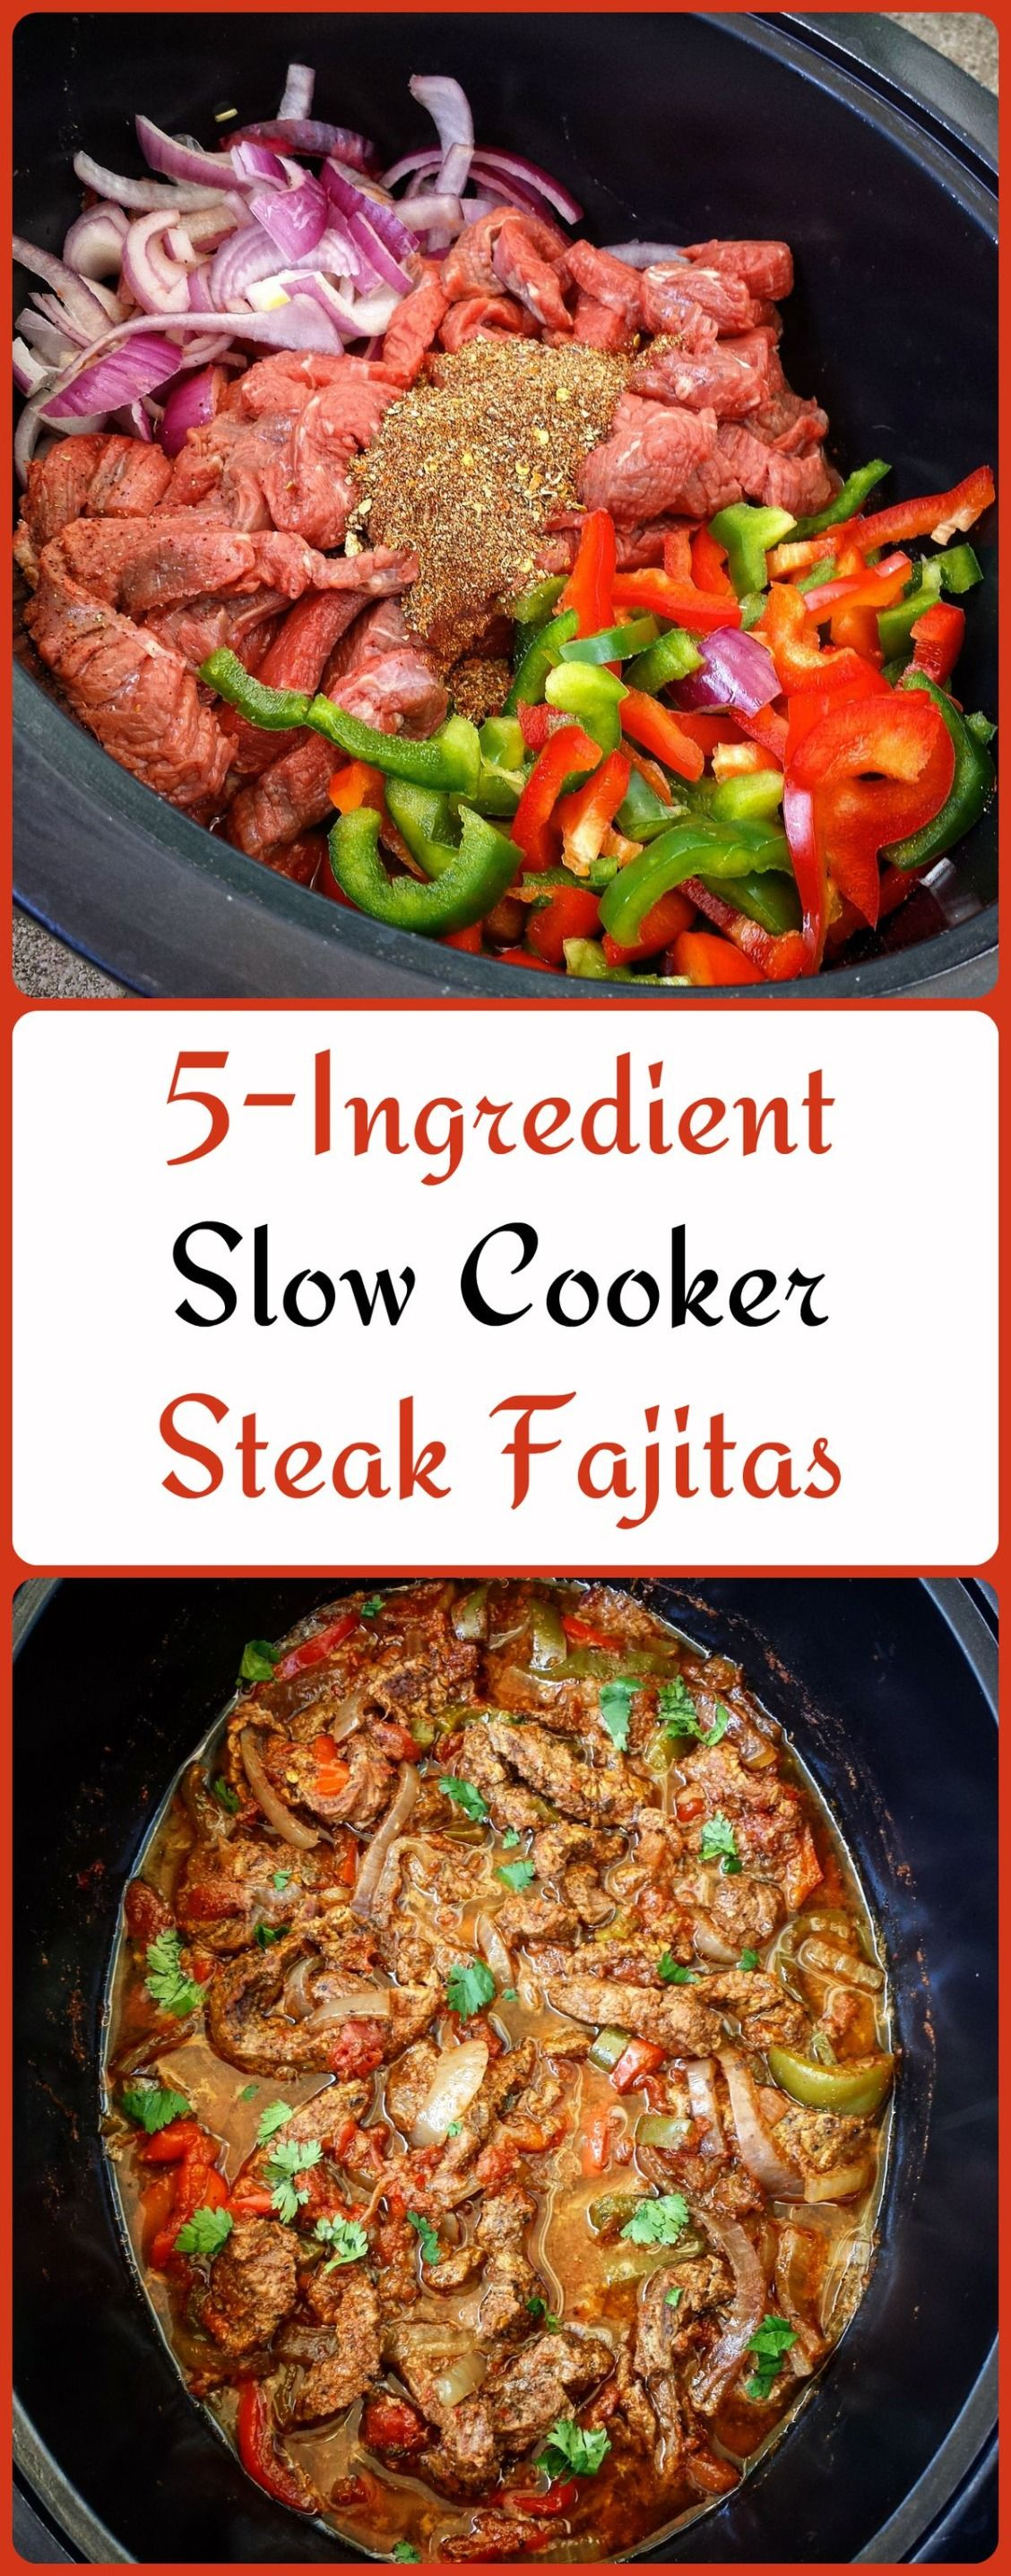 VIDEO) Slow Cooker/Instant Pot Steak Fajitas (Low-Carb, Paleo, Whole30 #crockpotmeals